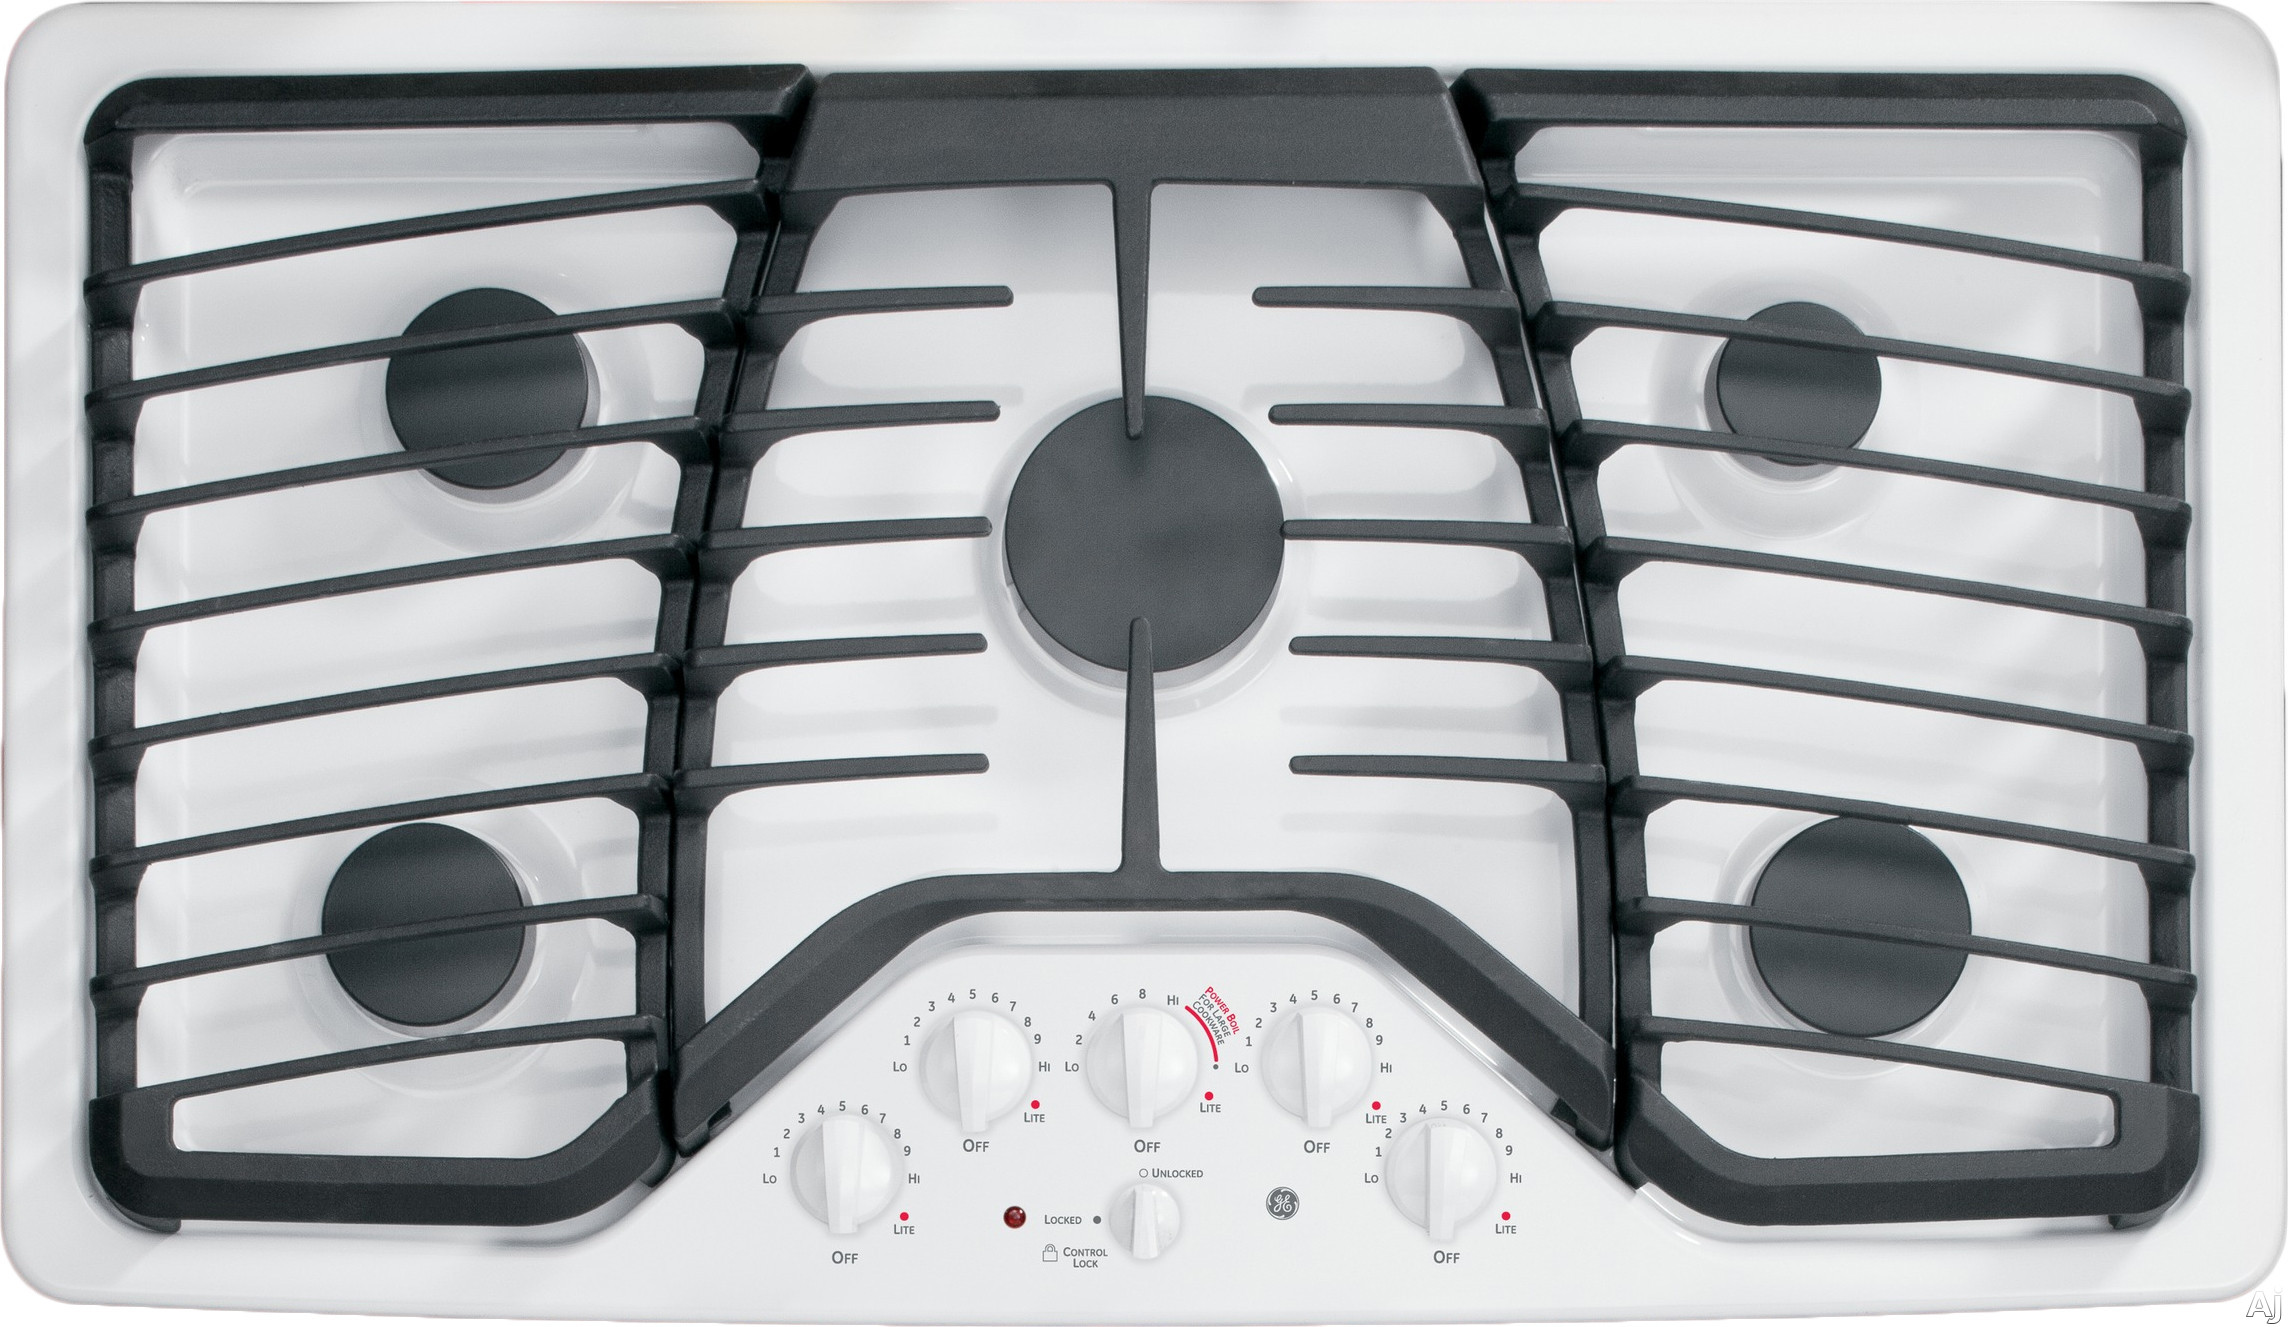 GE Profile PGP976DETWW 36 Inch Gas Cooktop with 5 Sealed Burners, 17,000 BTU PowerBoil, Precise Simmer Burner, Heavy Cast Grates, Child Lock, LED Backlit Knobs, GE Fits! Guarantee and ADA Compliant: White